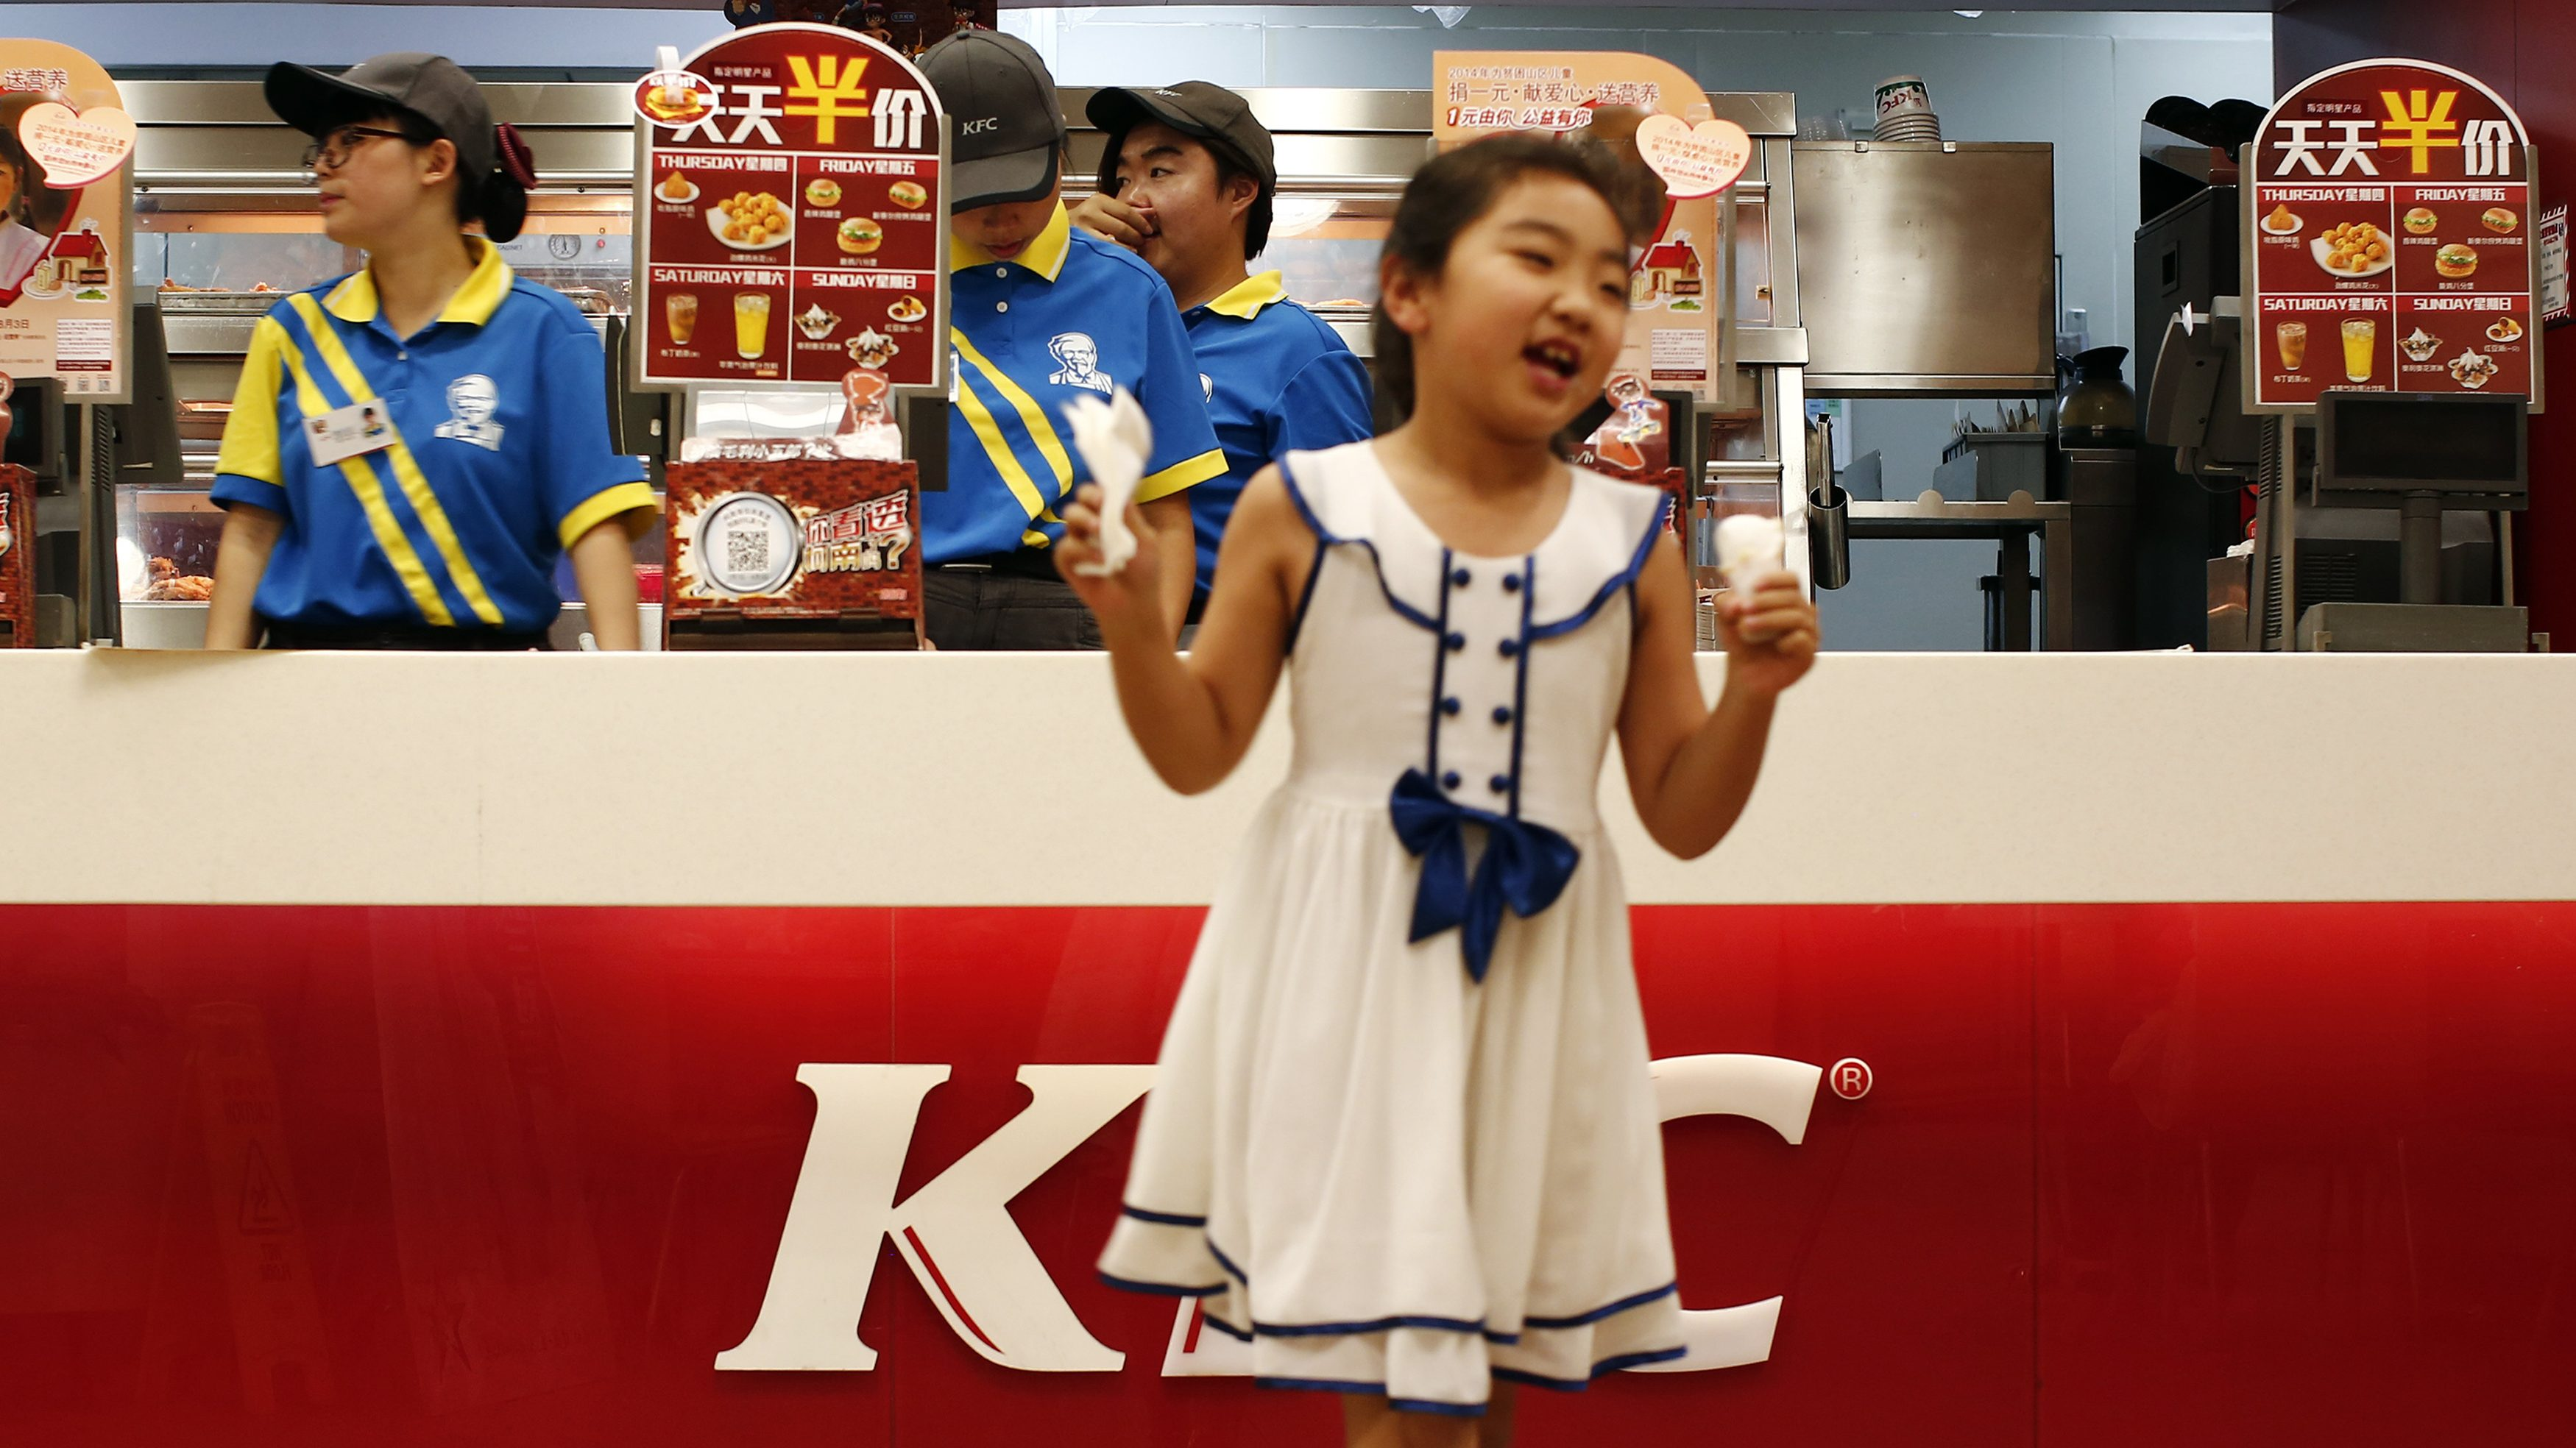 A girl reacts after buying ice cream at a KFC restaurant in Beijing July 17, 2014. Yum Brands Inc on Wednesday said its KFC business bounced back in China, its No. 1 market, but its stock fell more than 2 percent in extended-hours trading on disappointing quarterly results from its India, Taco Bell and Pizza Hut divisions.